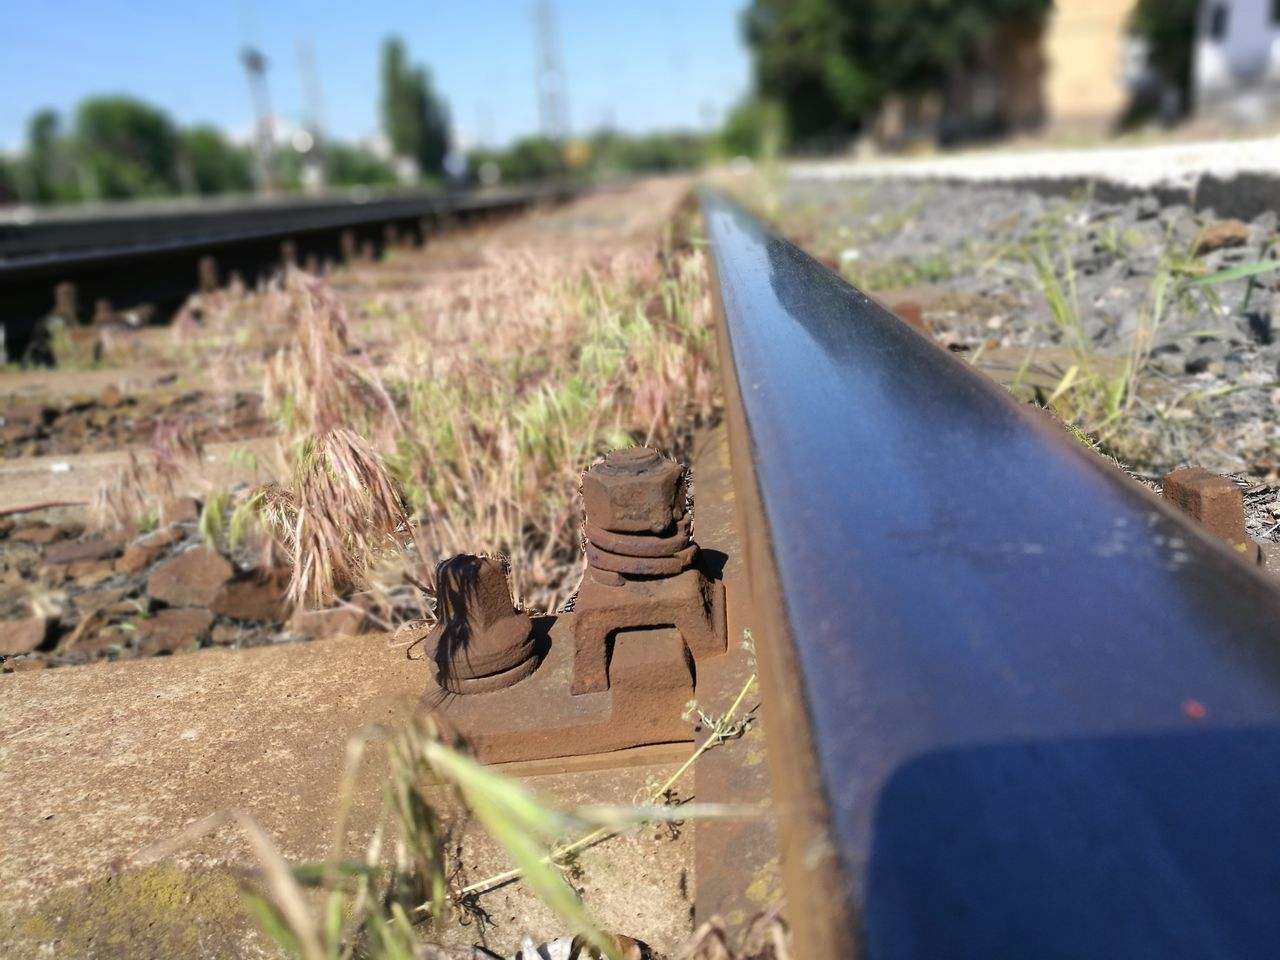 No People Day Outdoors Grass Nature Close-up Metallic Shiny Things Shiny Train Station Train Tracks Tracks LINE Rail Grass Focus On Foreground Summer Let's Go. Together.